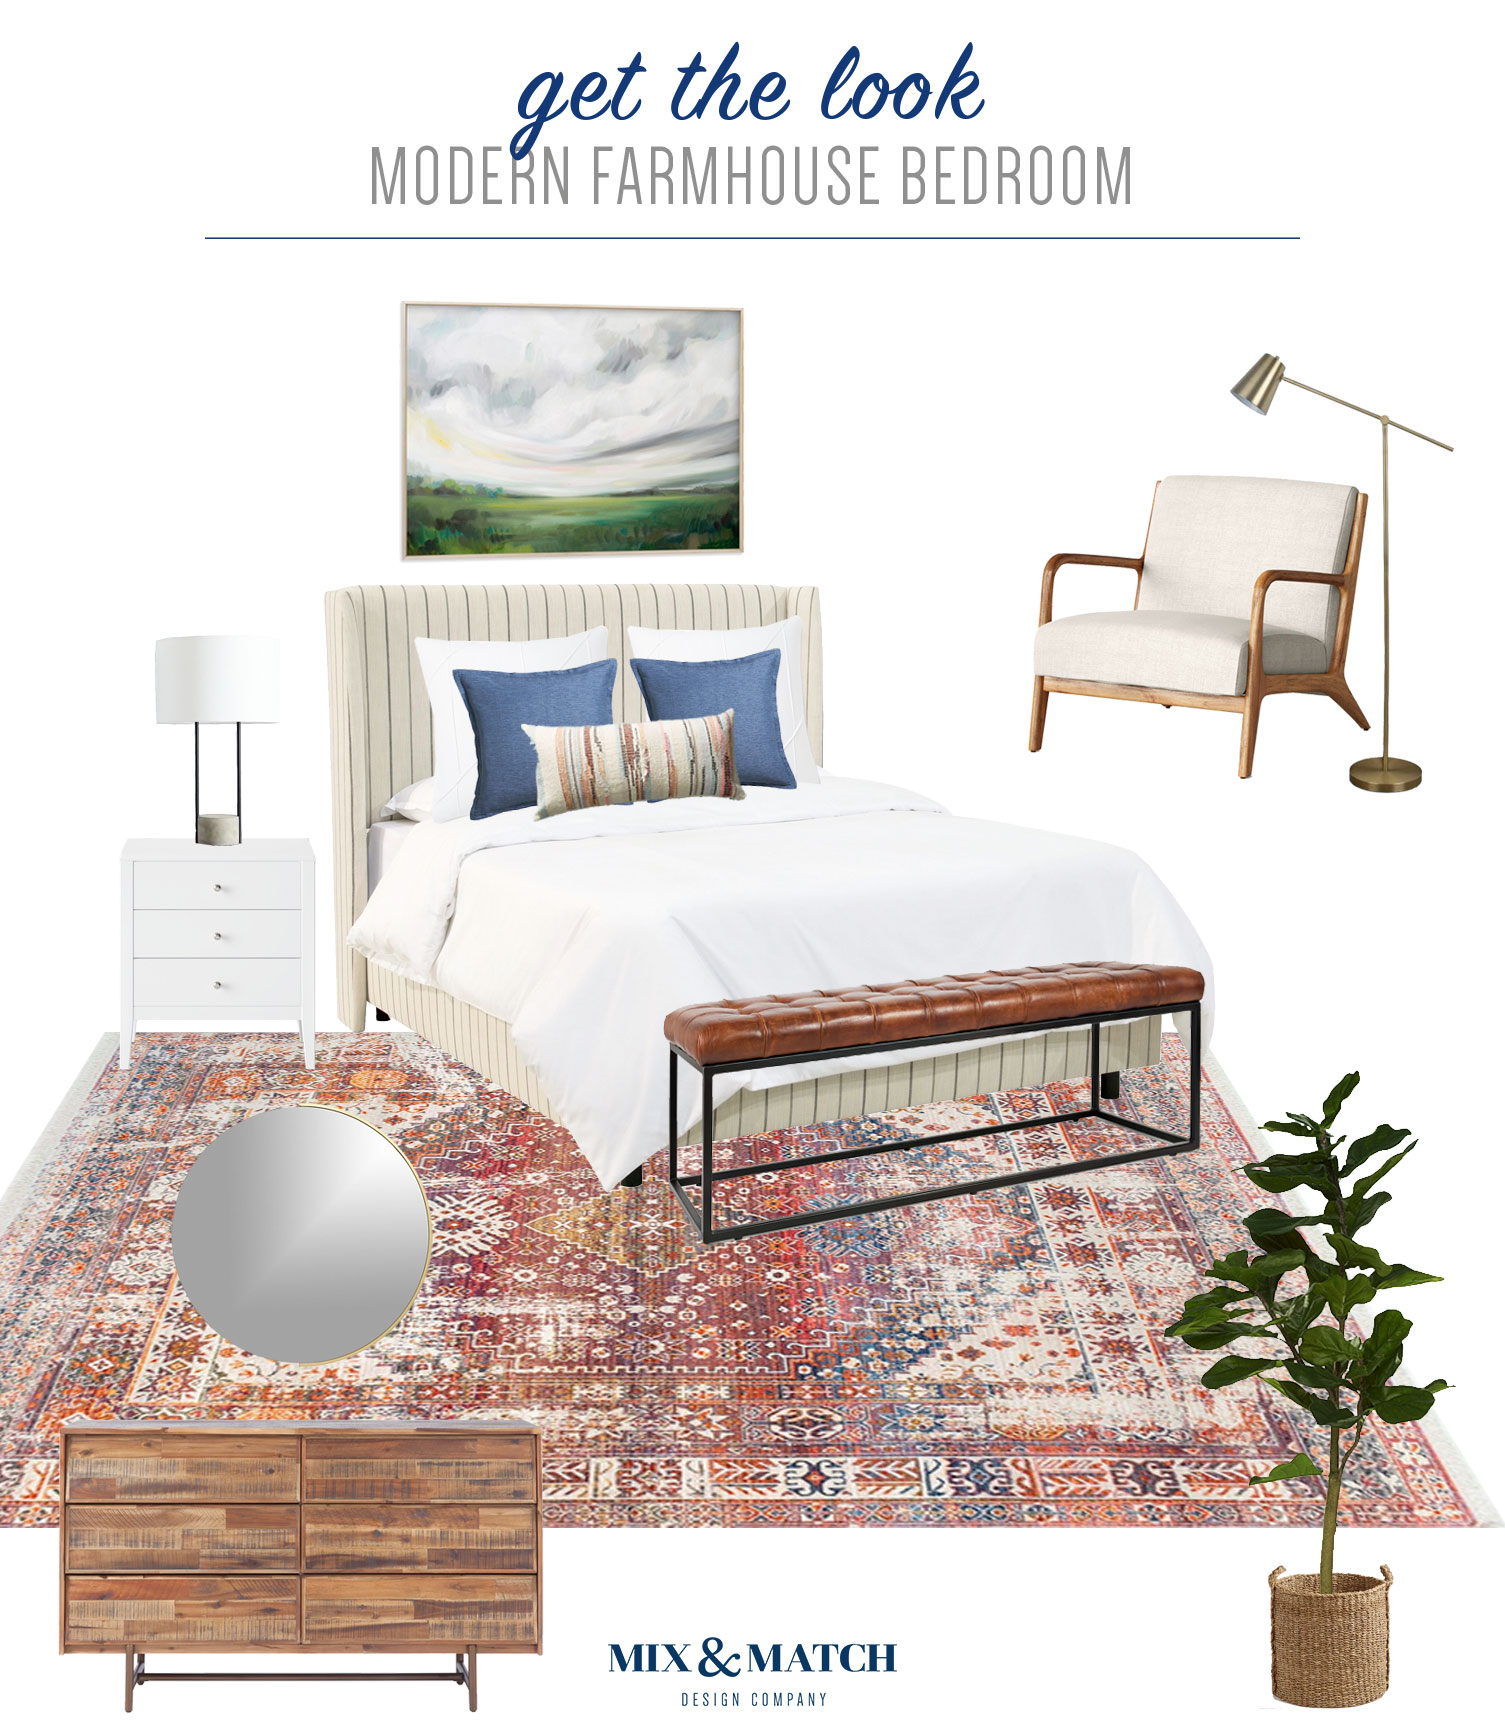 Get the look of this modern farmhouse bedroom over on the Mix & Match blog! Clean lines and rustic furniture pieces mix together beautifully to make for a casual and pretty bedroom design!